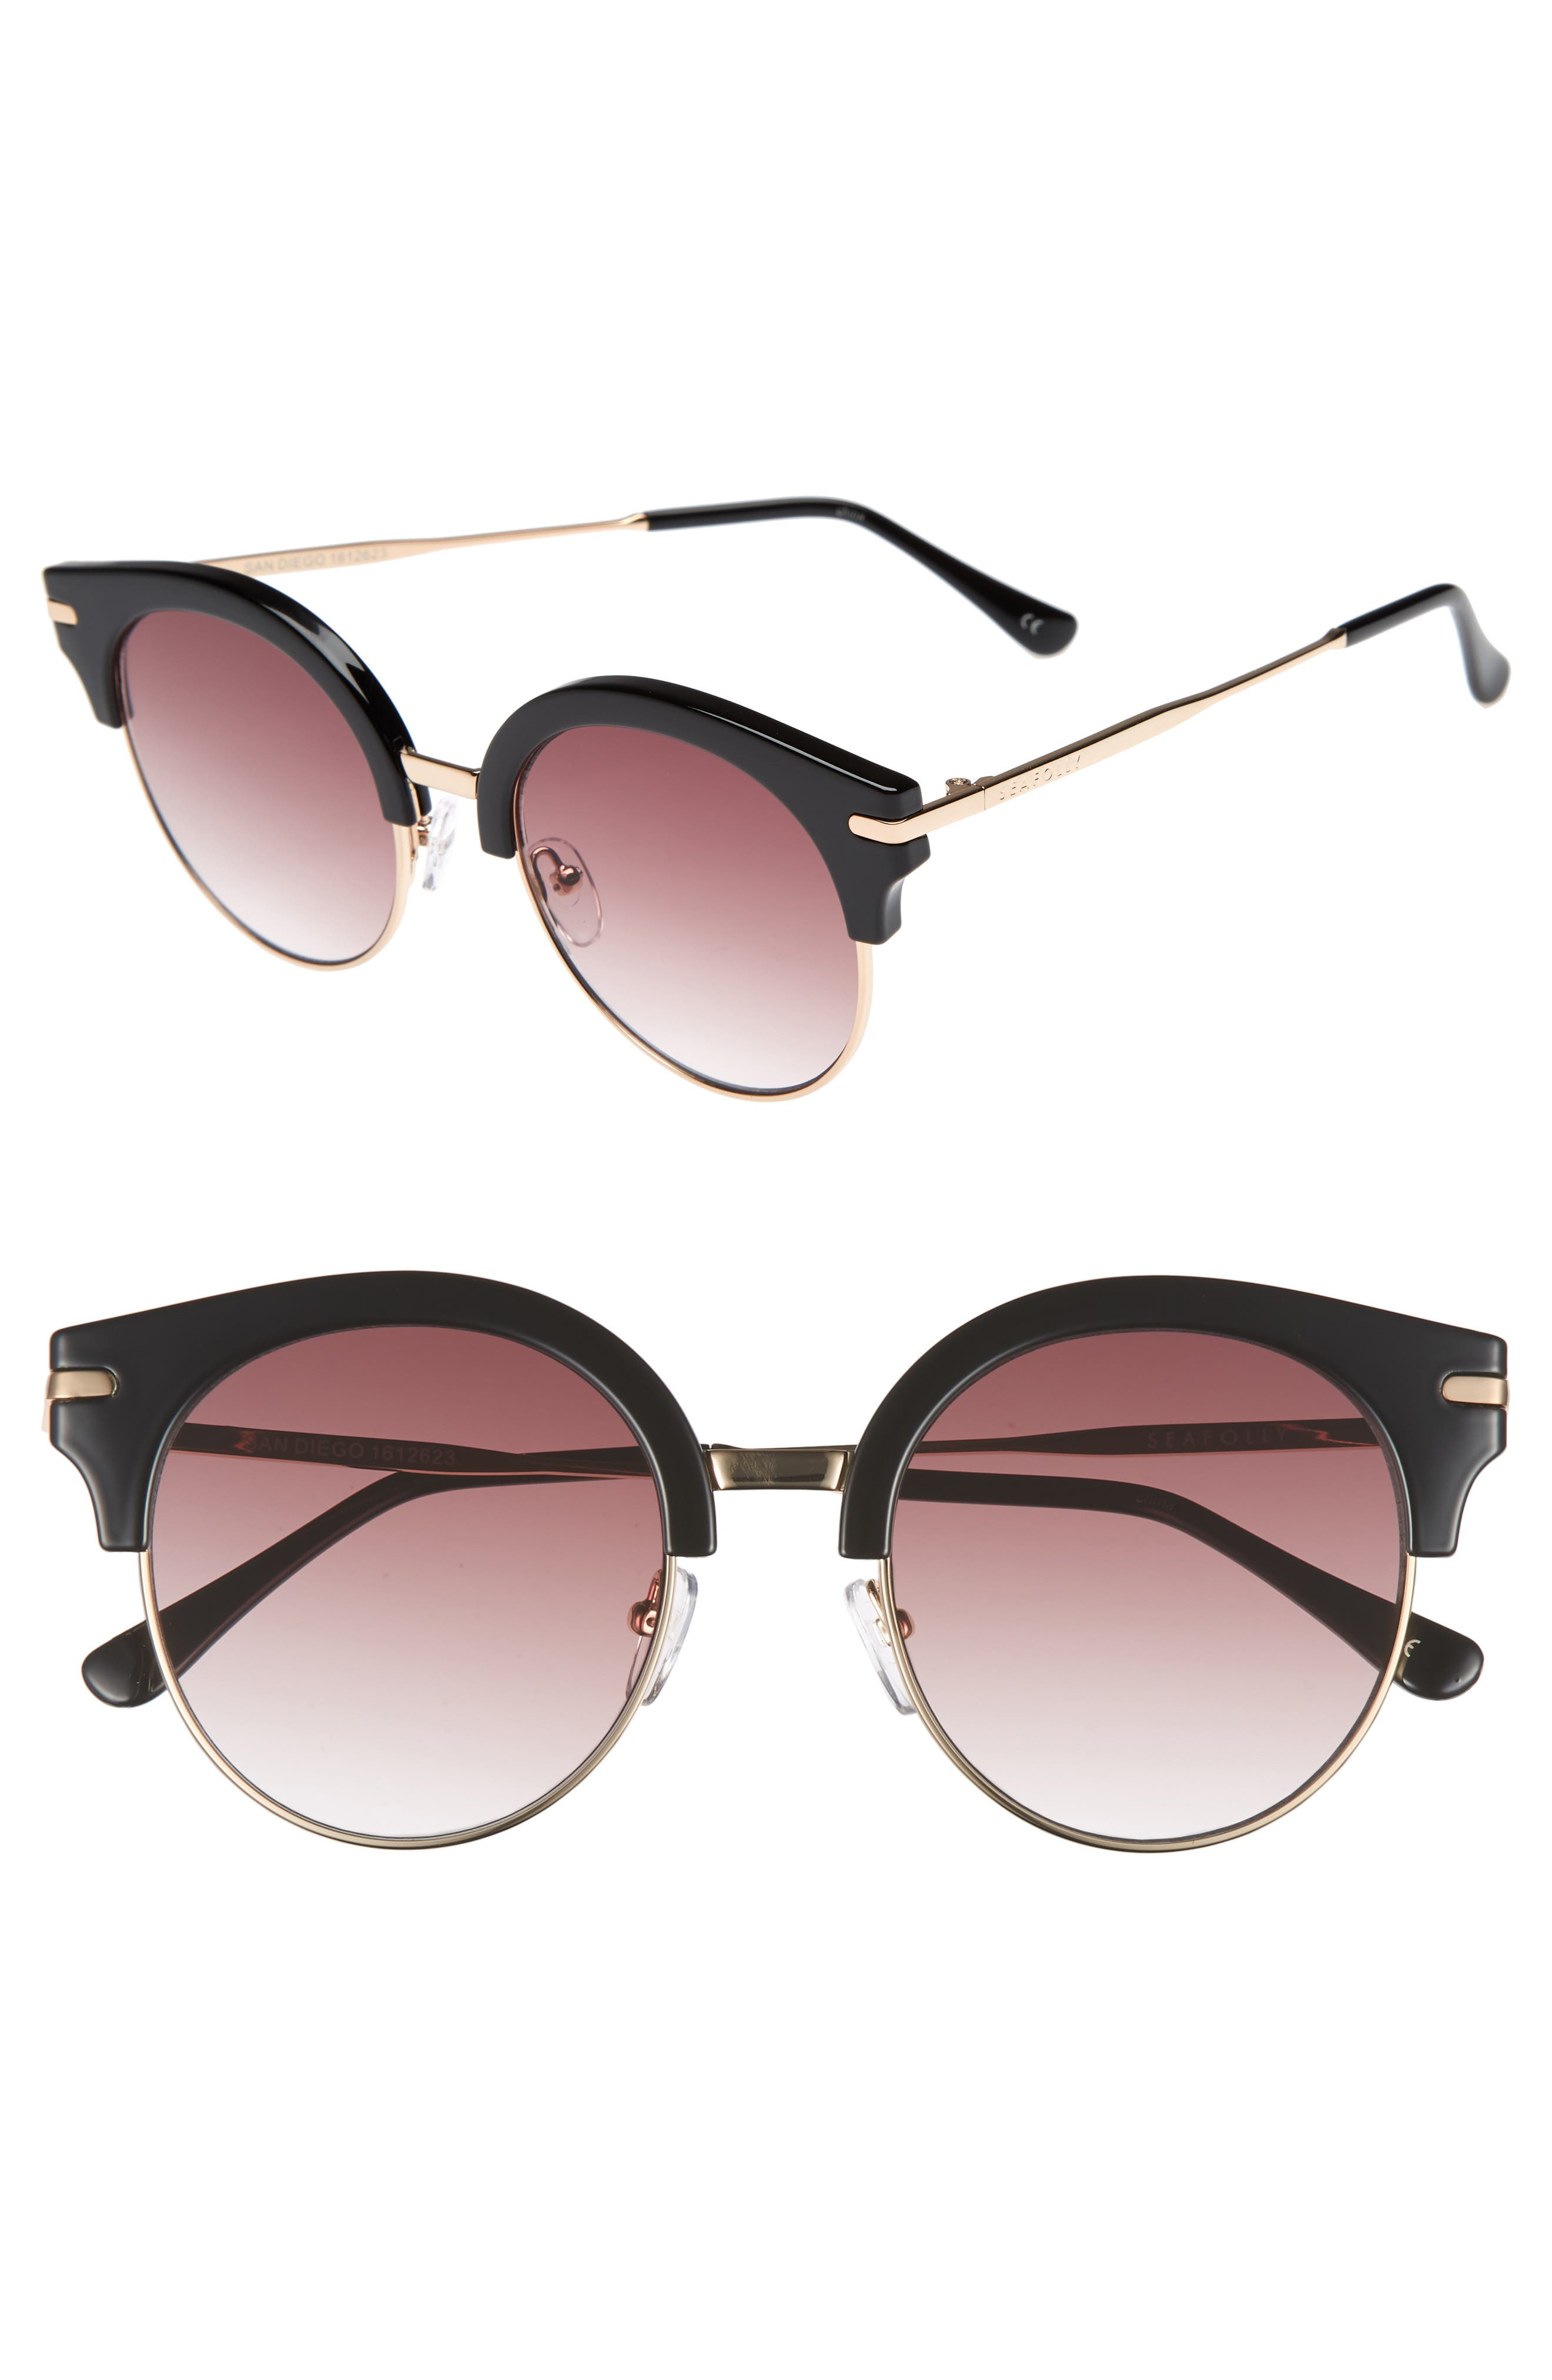 San Diego 52mm Cat Eye Sunglasses,                             Main thumbnail 1, color,                             001